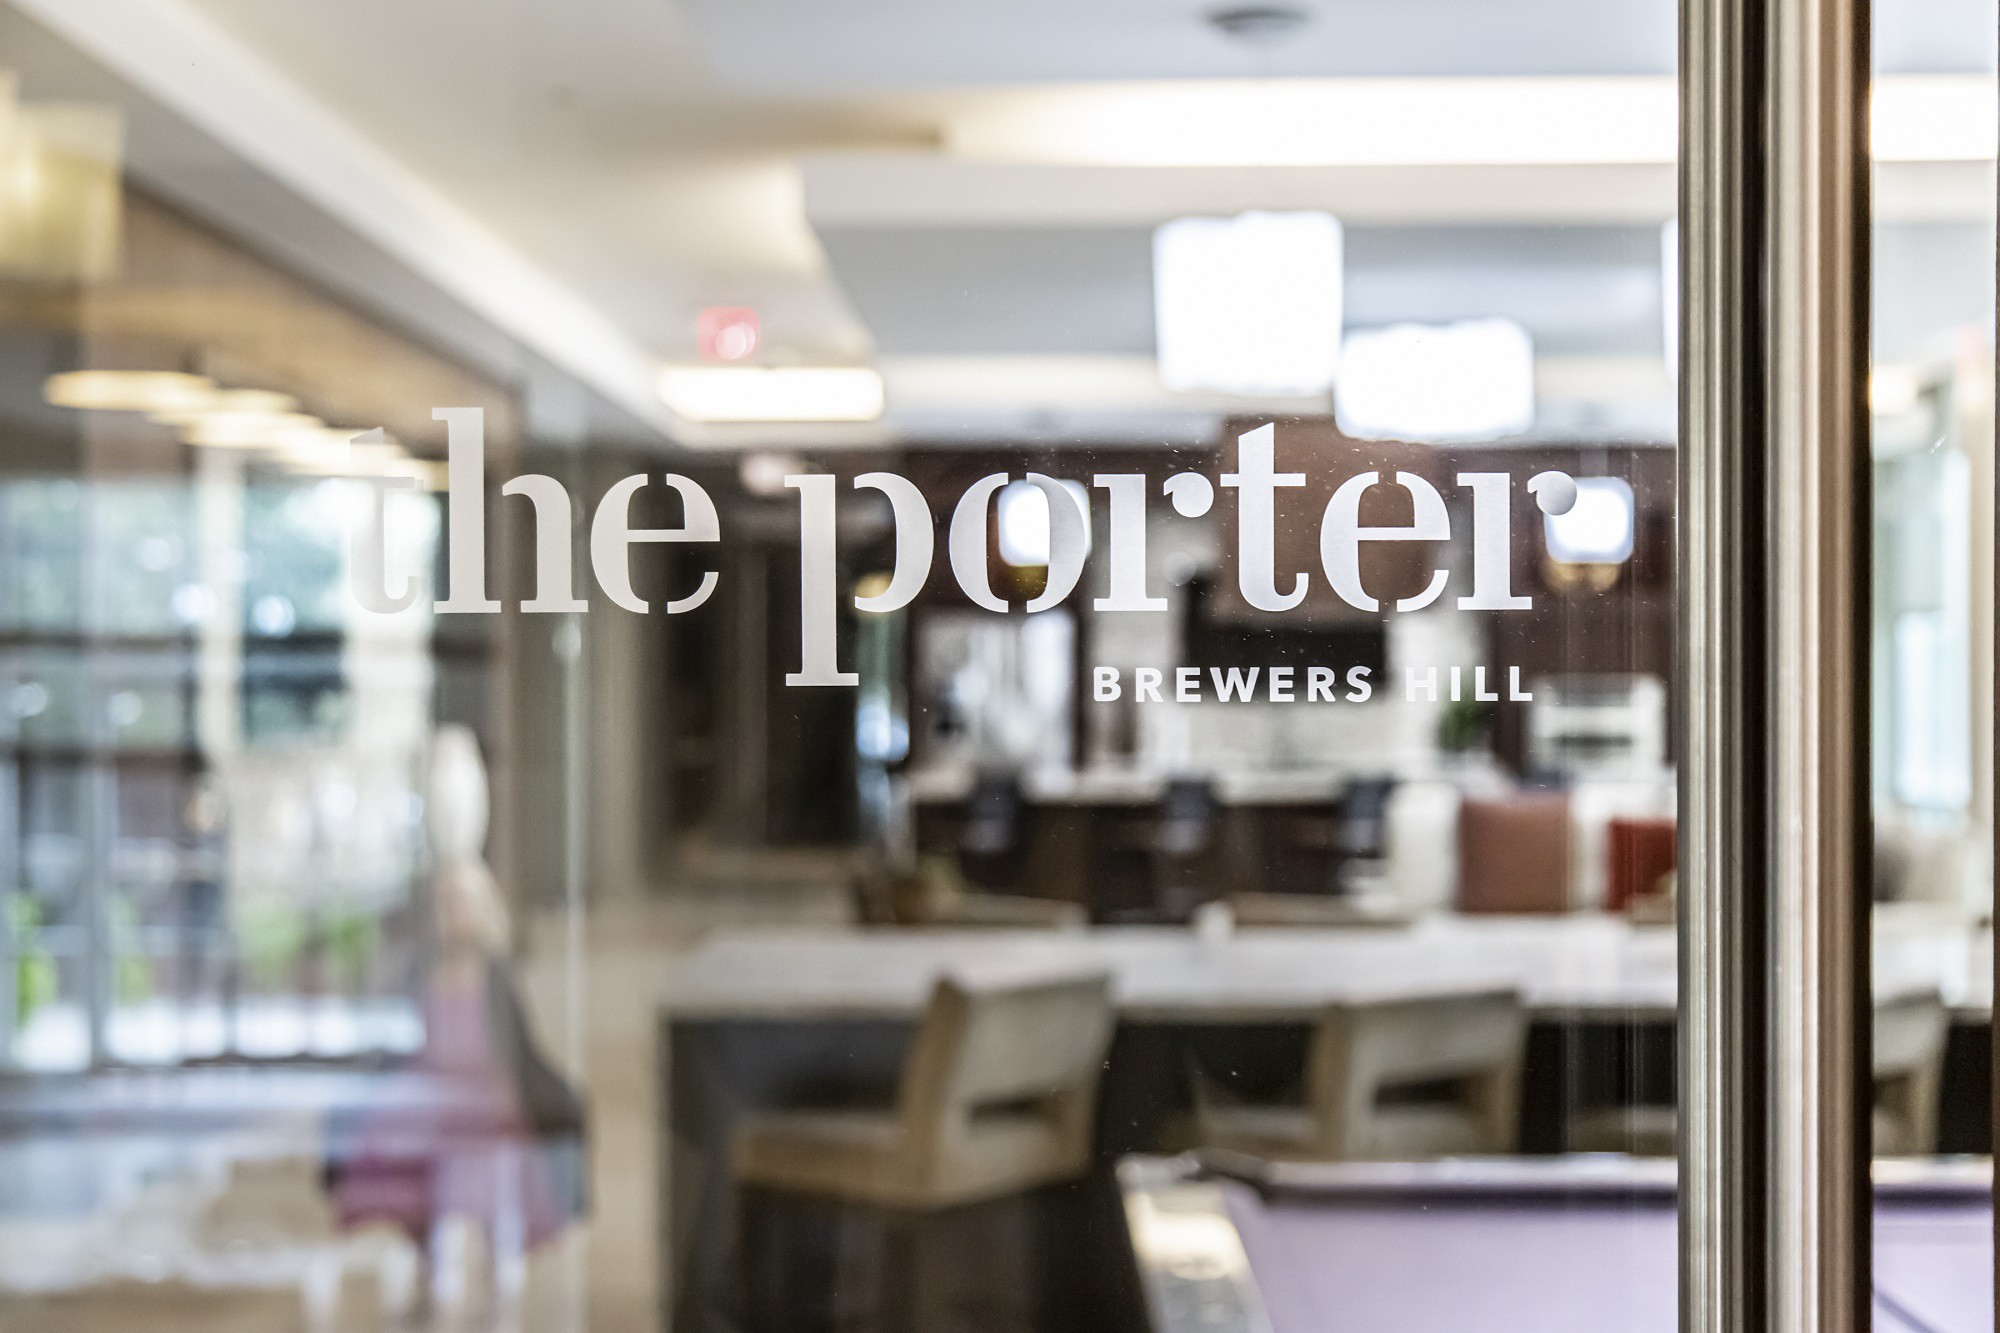 The Porter Brewers Hill, Baltimore - (see pics & AVAIL)